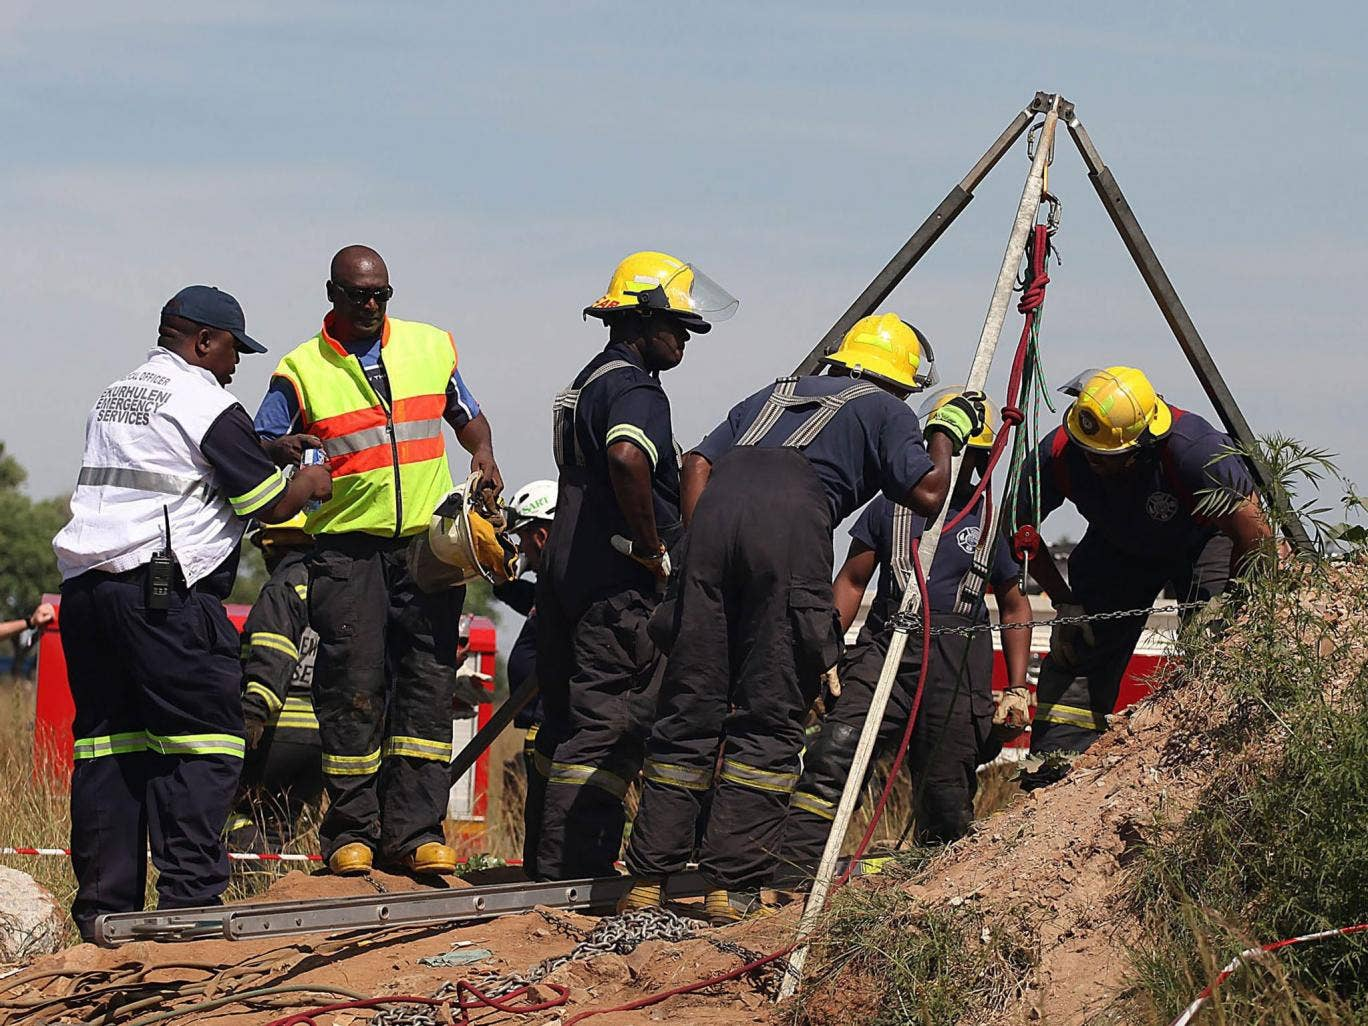 Rescue services and emergency personnel try to free miners trapped underground in Benoni, east of Johannesburg, South Africa, 16 February 2014